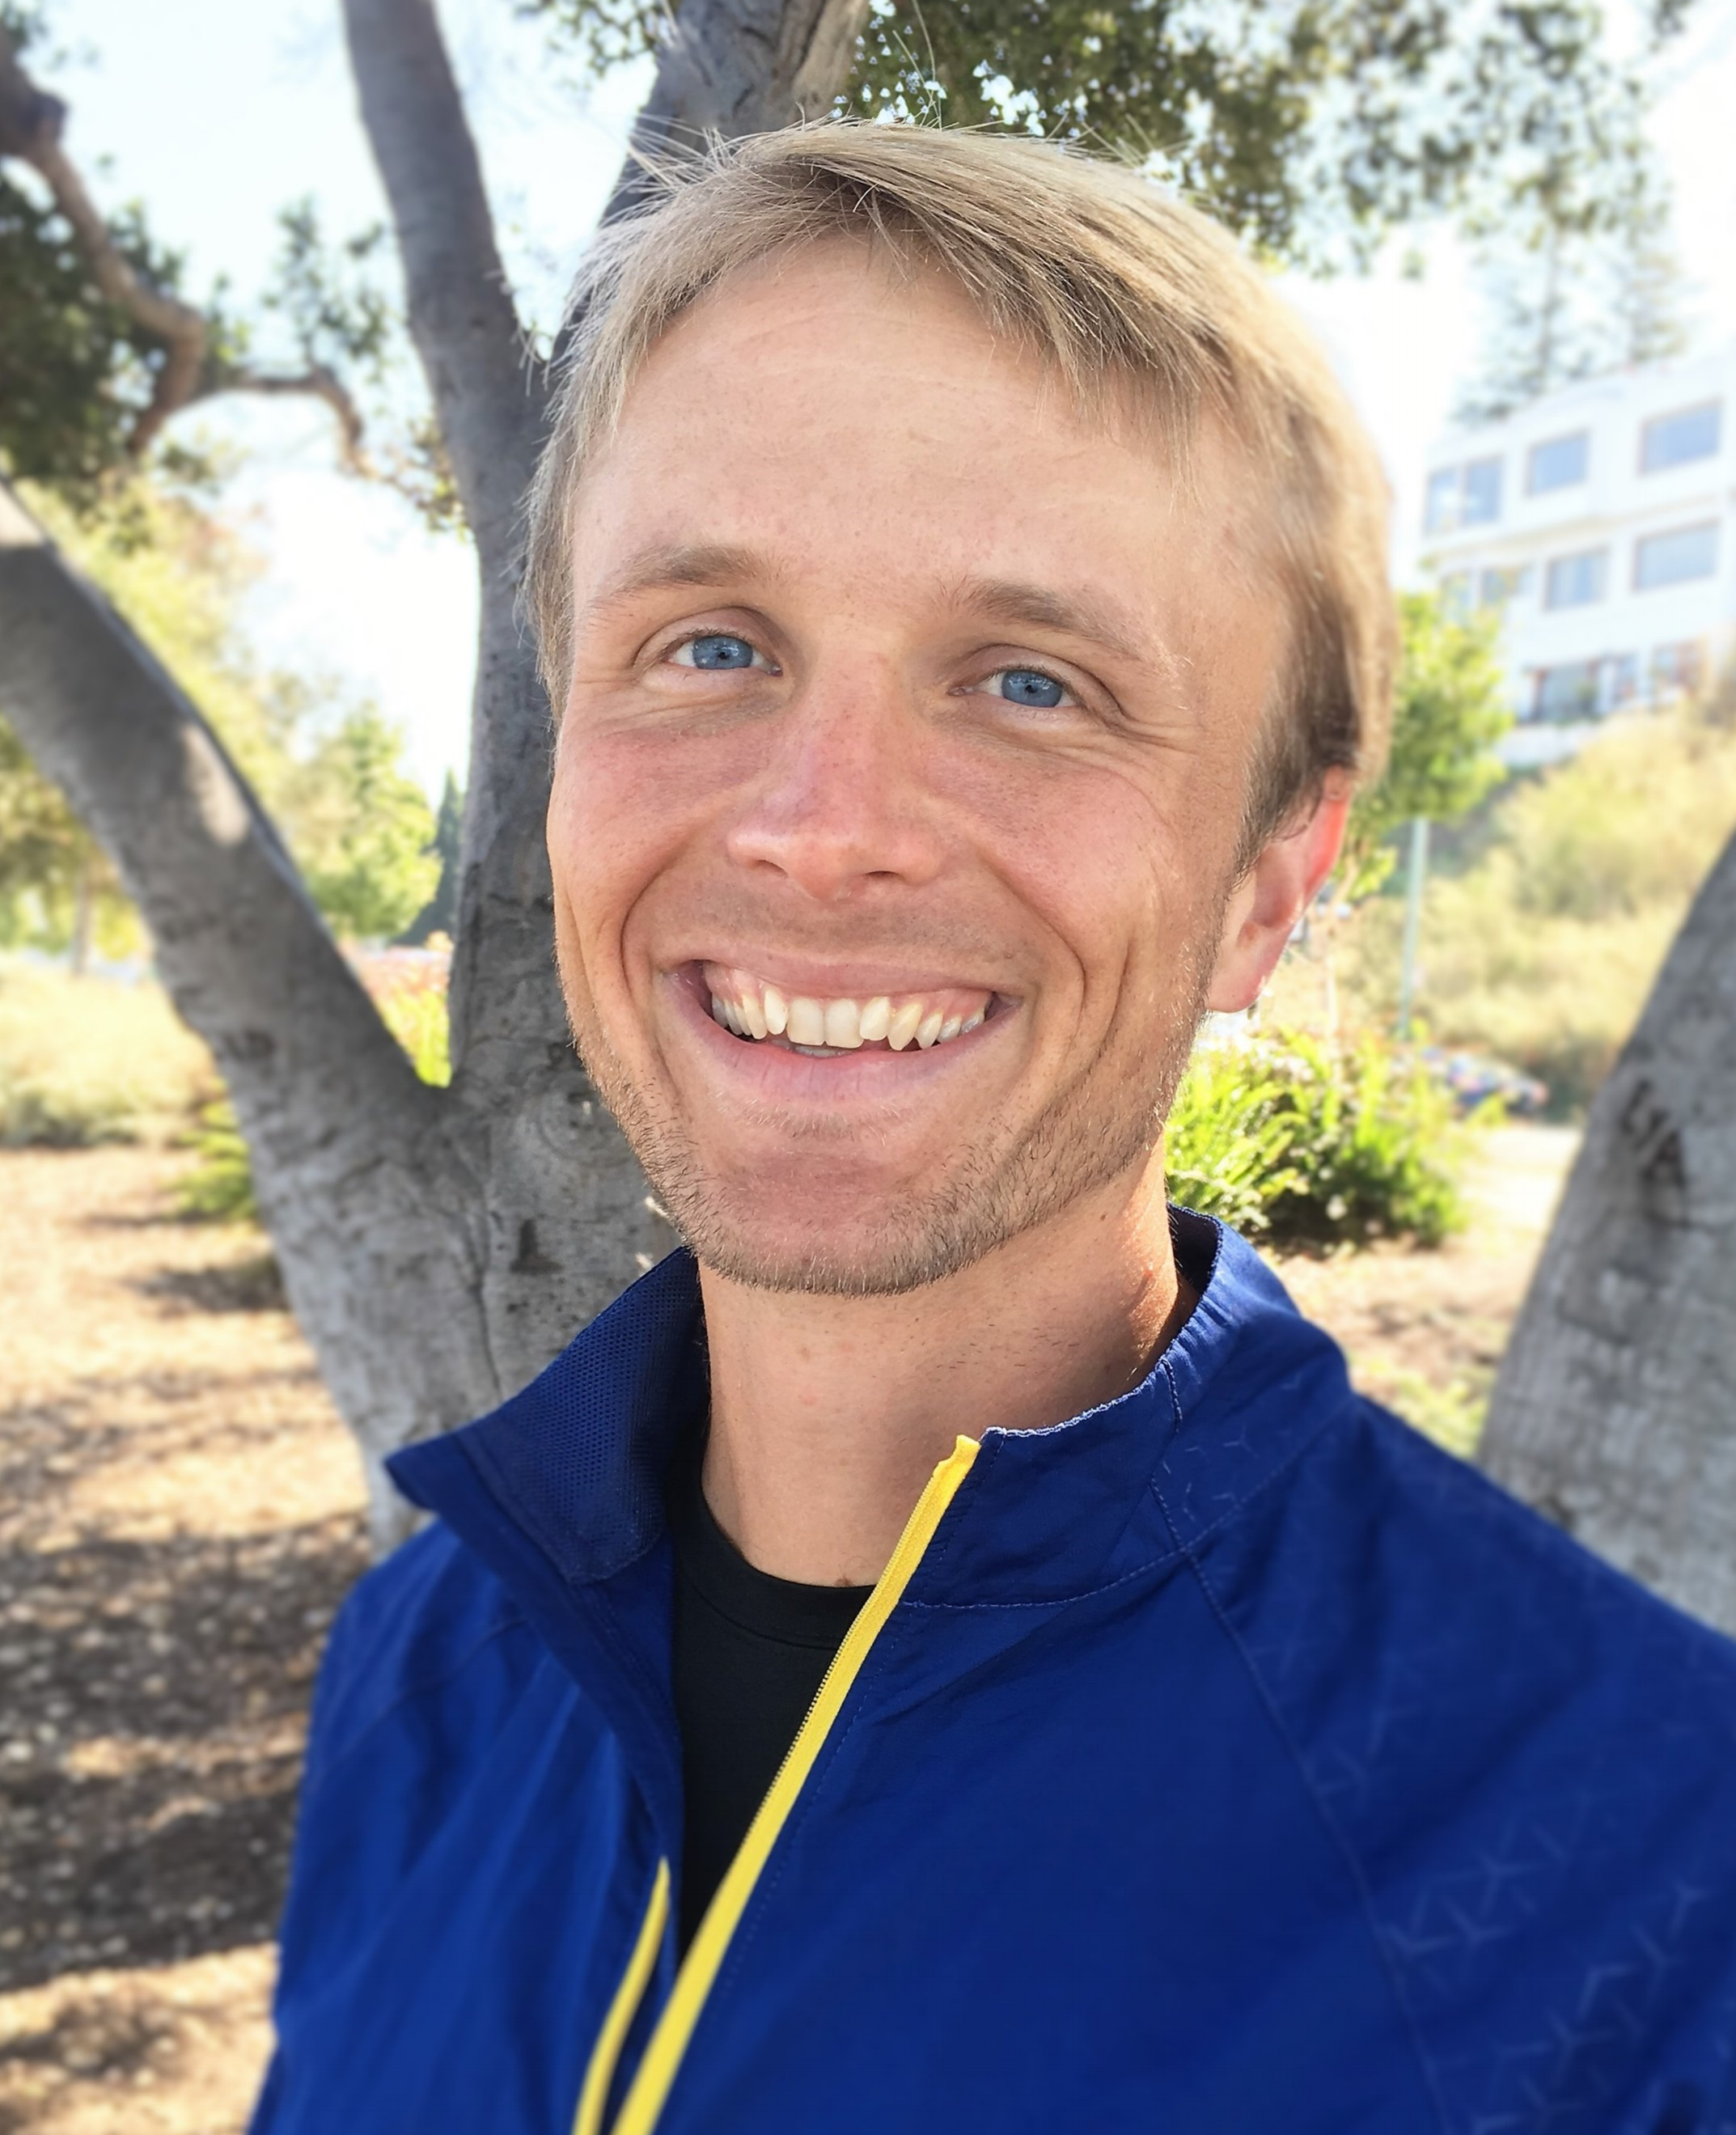 Running Coach - Bay Area San Francisco - Oakland California